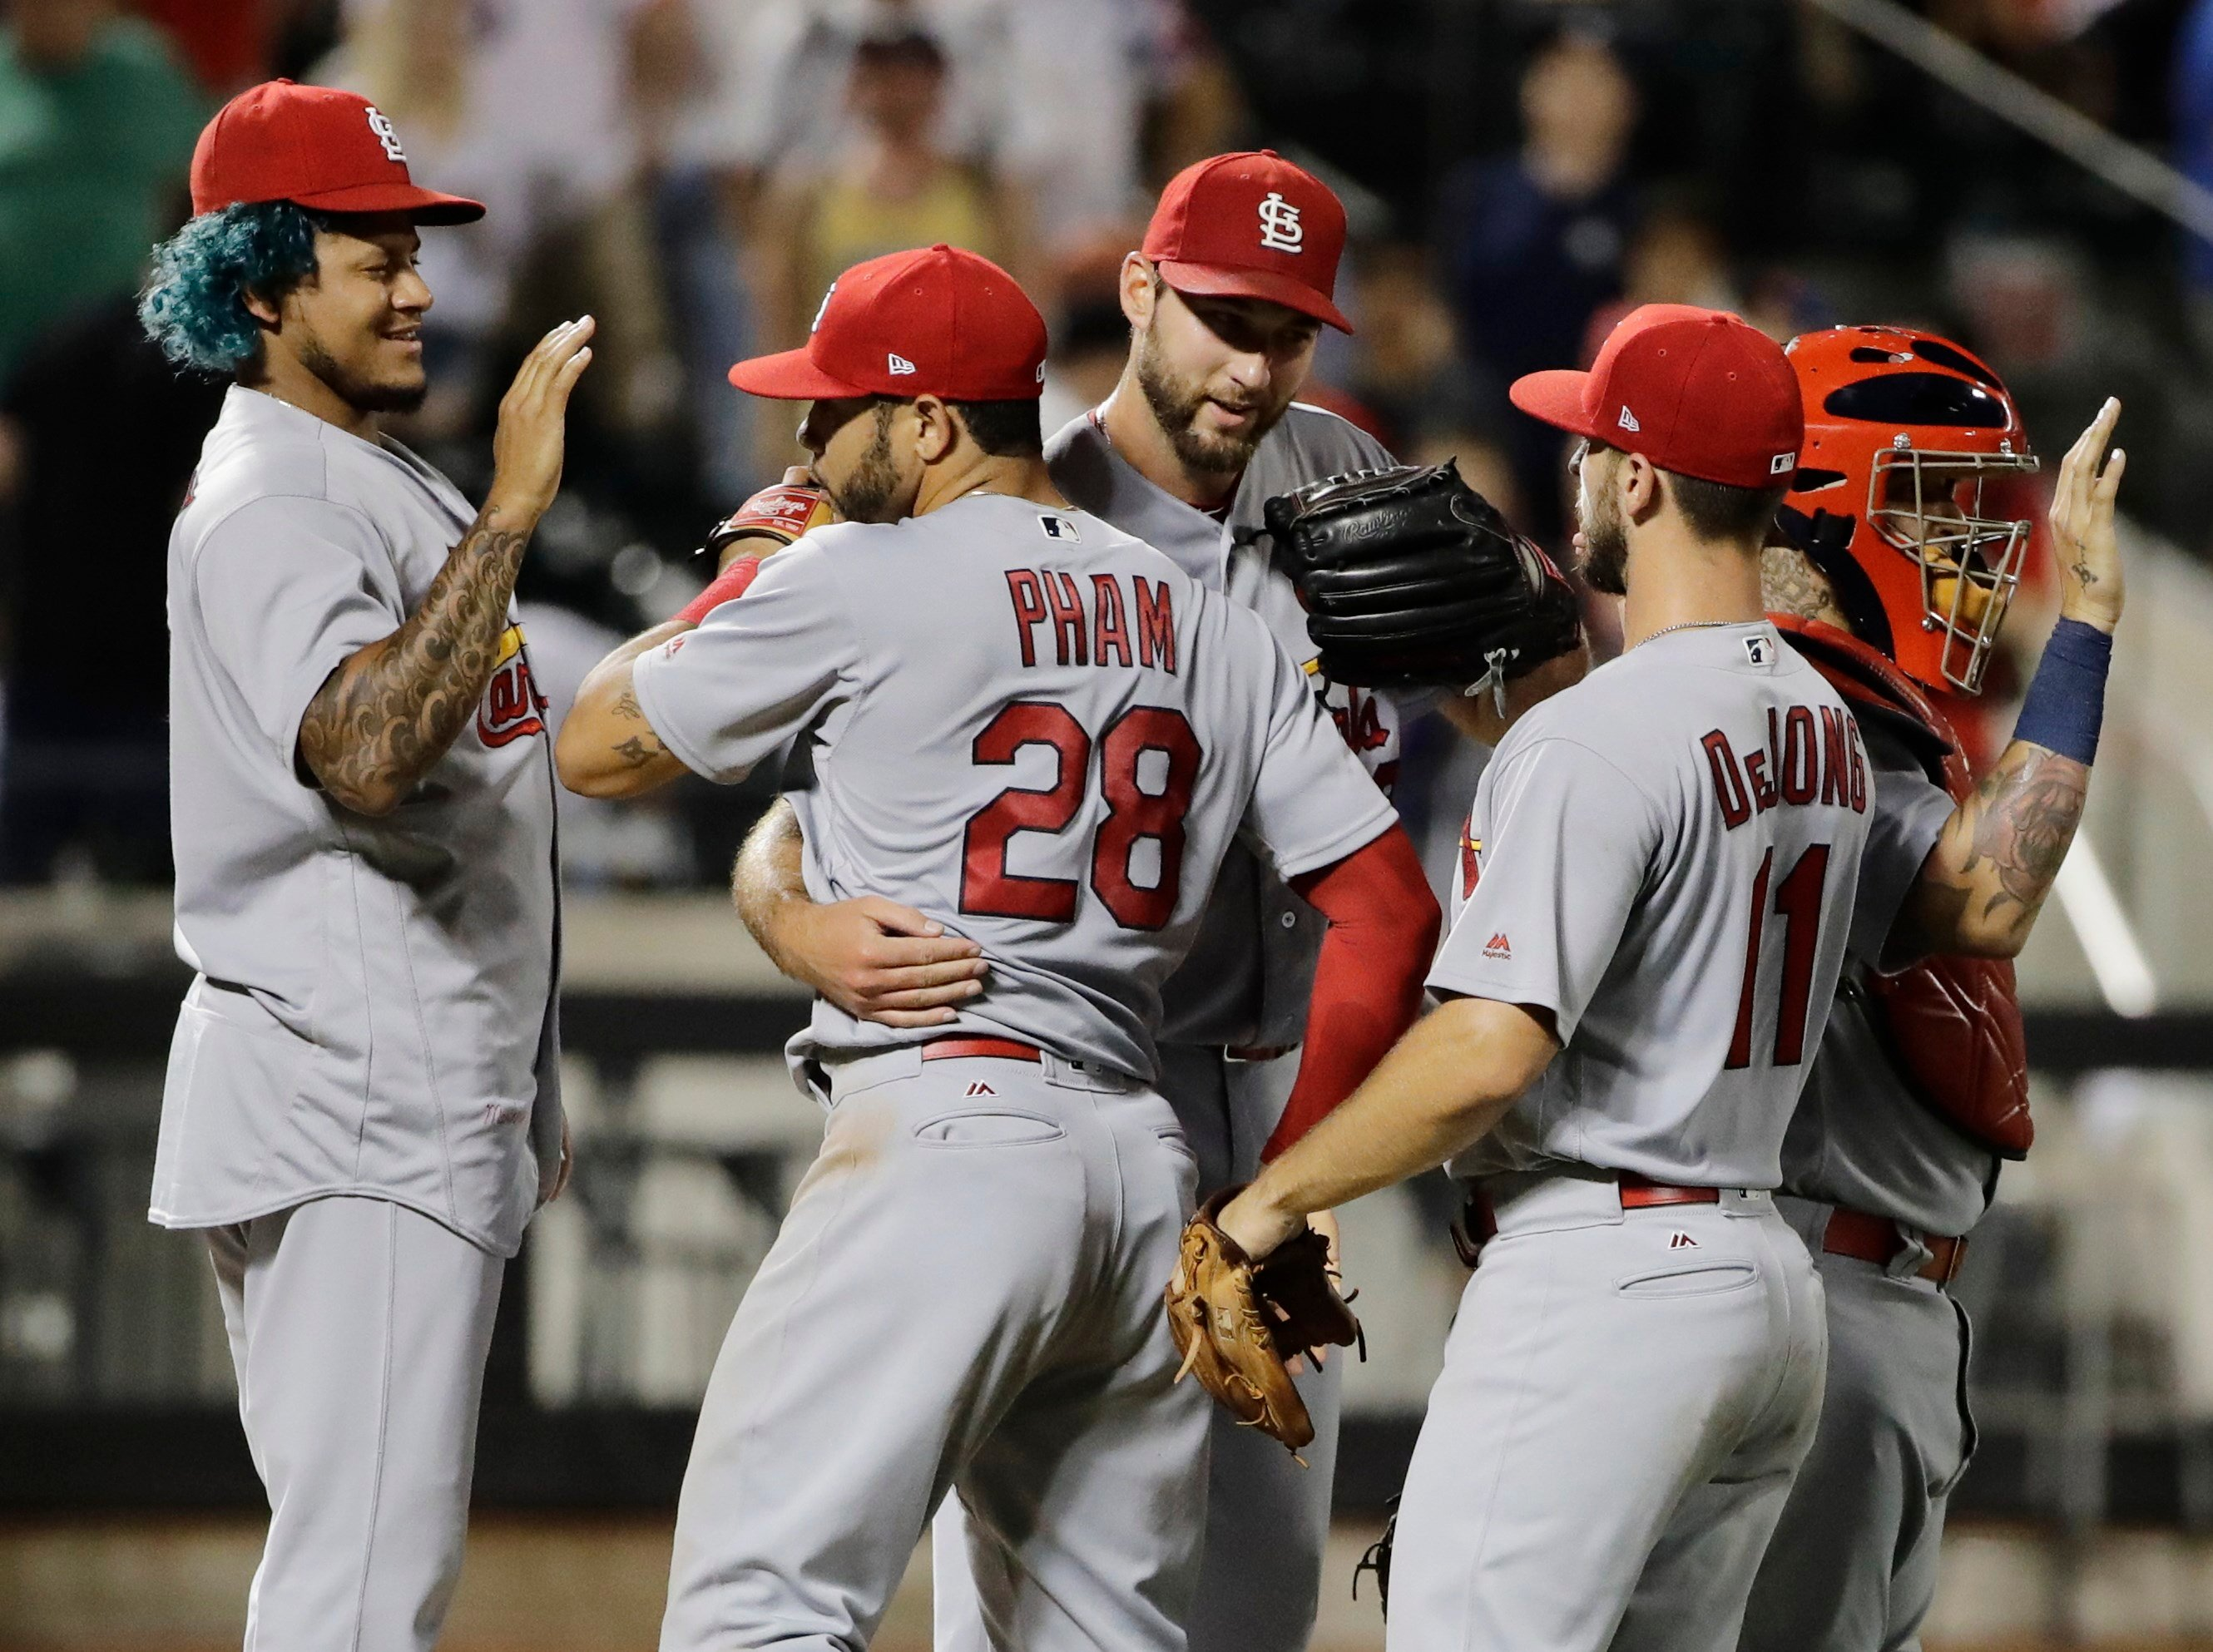 St. Louis Cardinals' Carlos Martinez, left, and Paul DeJong, right watch as Tommy Pham (28) hugs pitcher Michael Wacha after the Cardinals defeated the New York Mets 5-0 in a baseball game Tuesday, July 18, 2017, in New York. (AP Photo/Frank Franklin II)